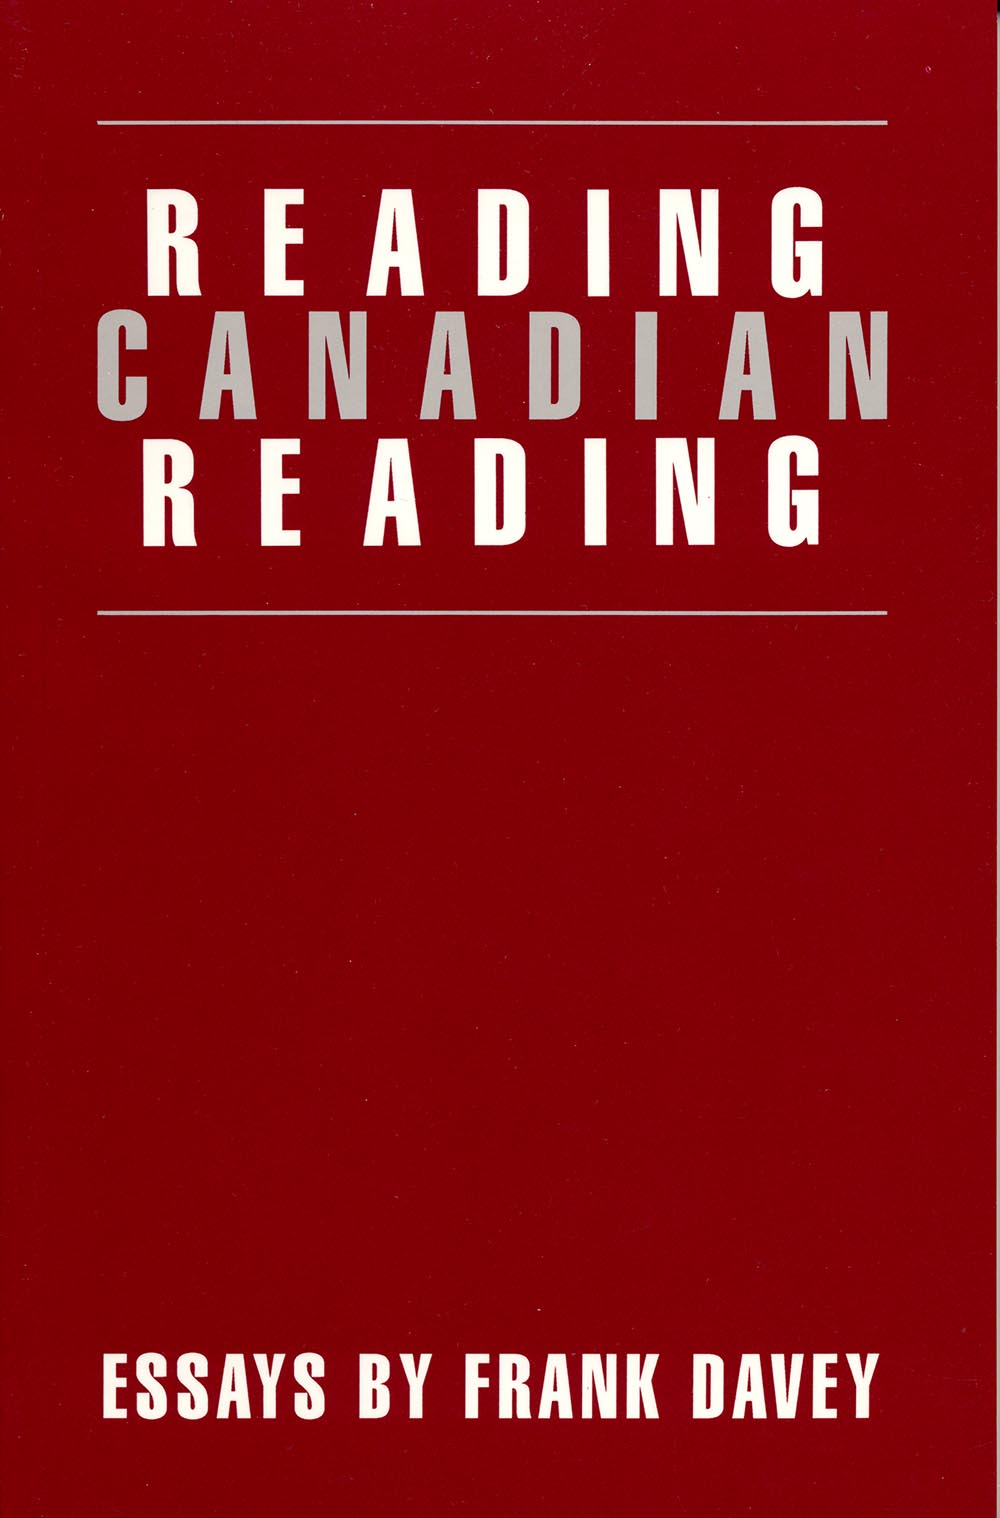 Reading Canadian Reading by Frank Davey